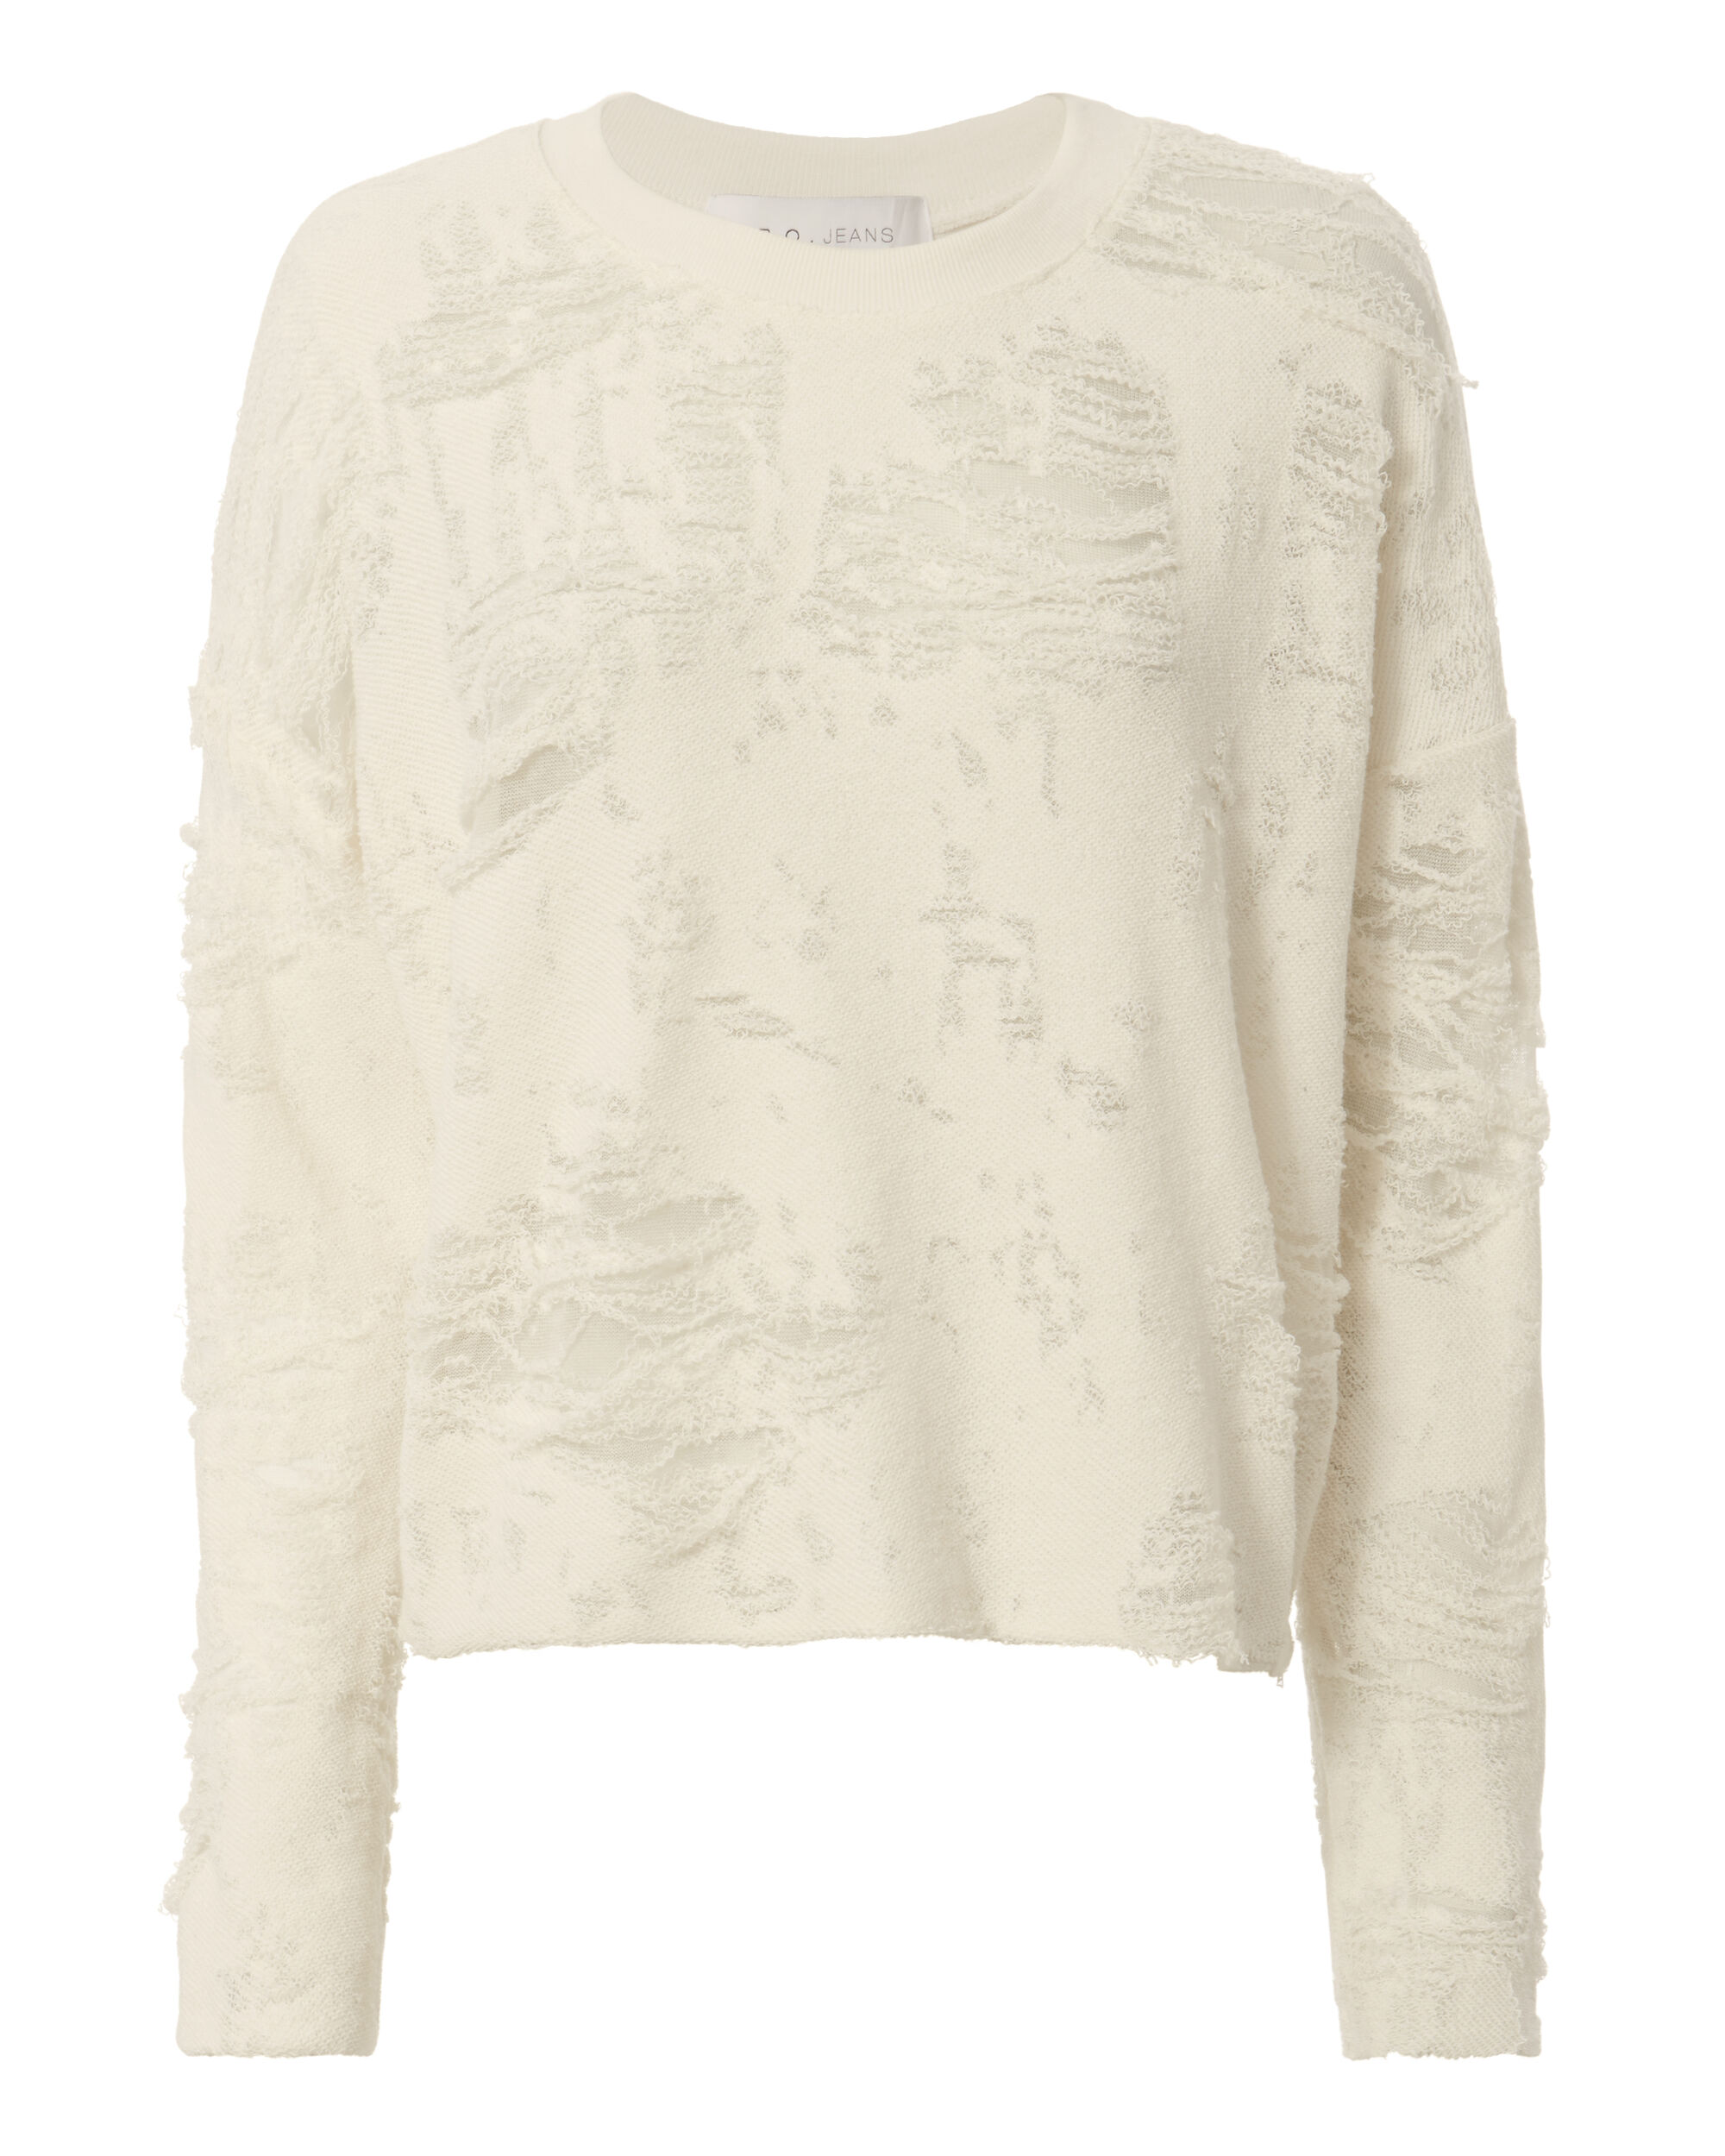 Cenix Burnout Cropped Sweatshirt, WHITE, hi-res